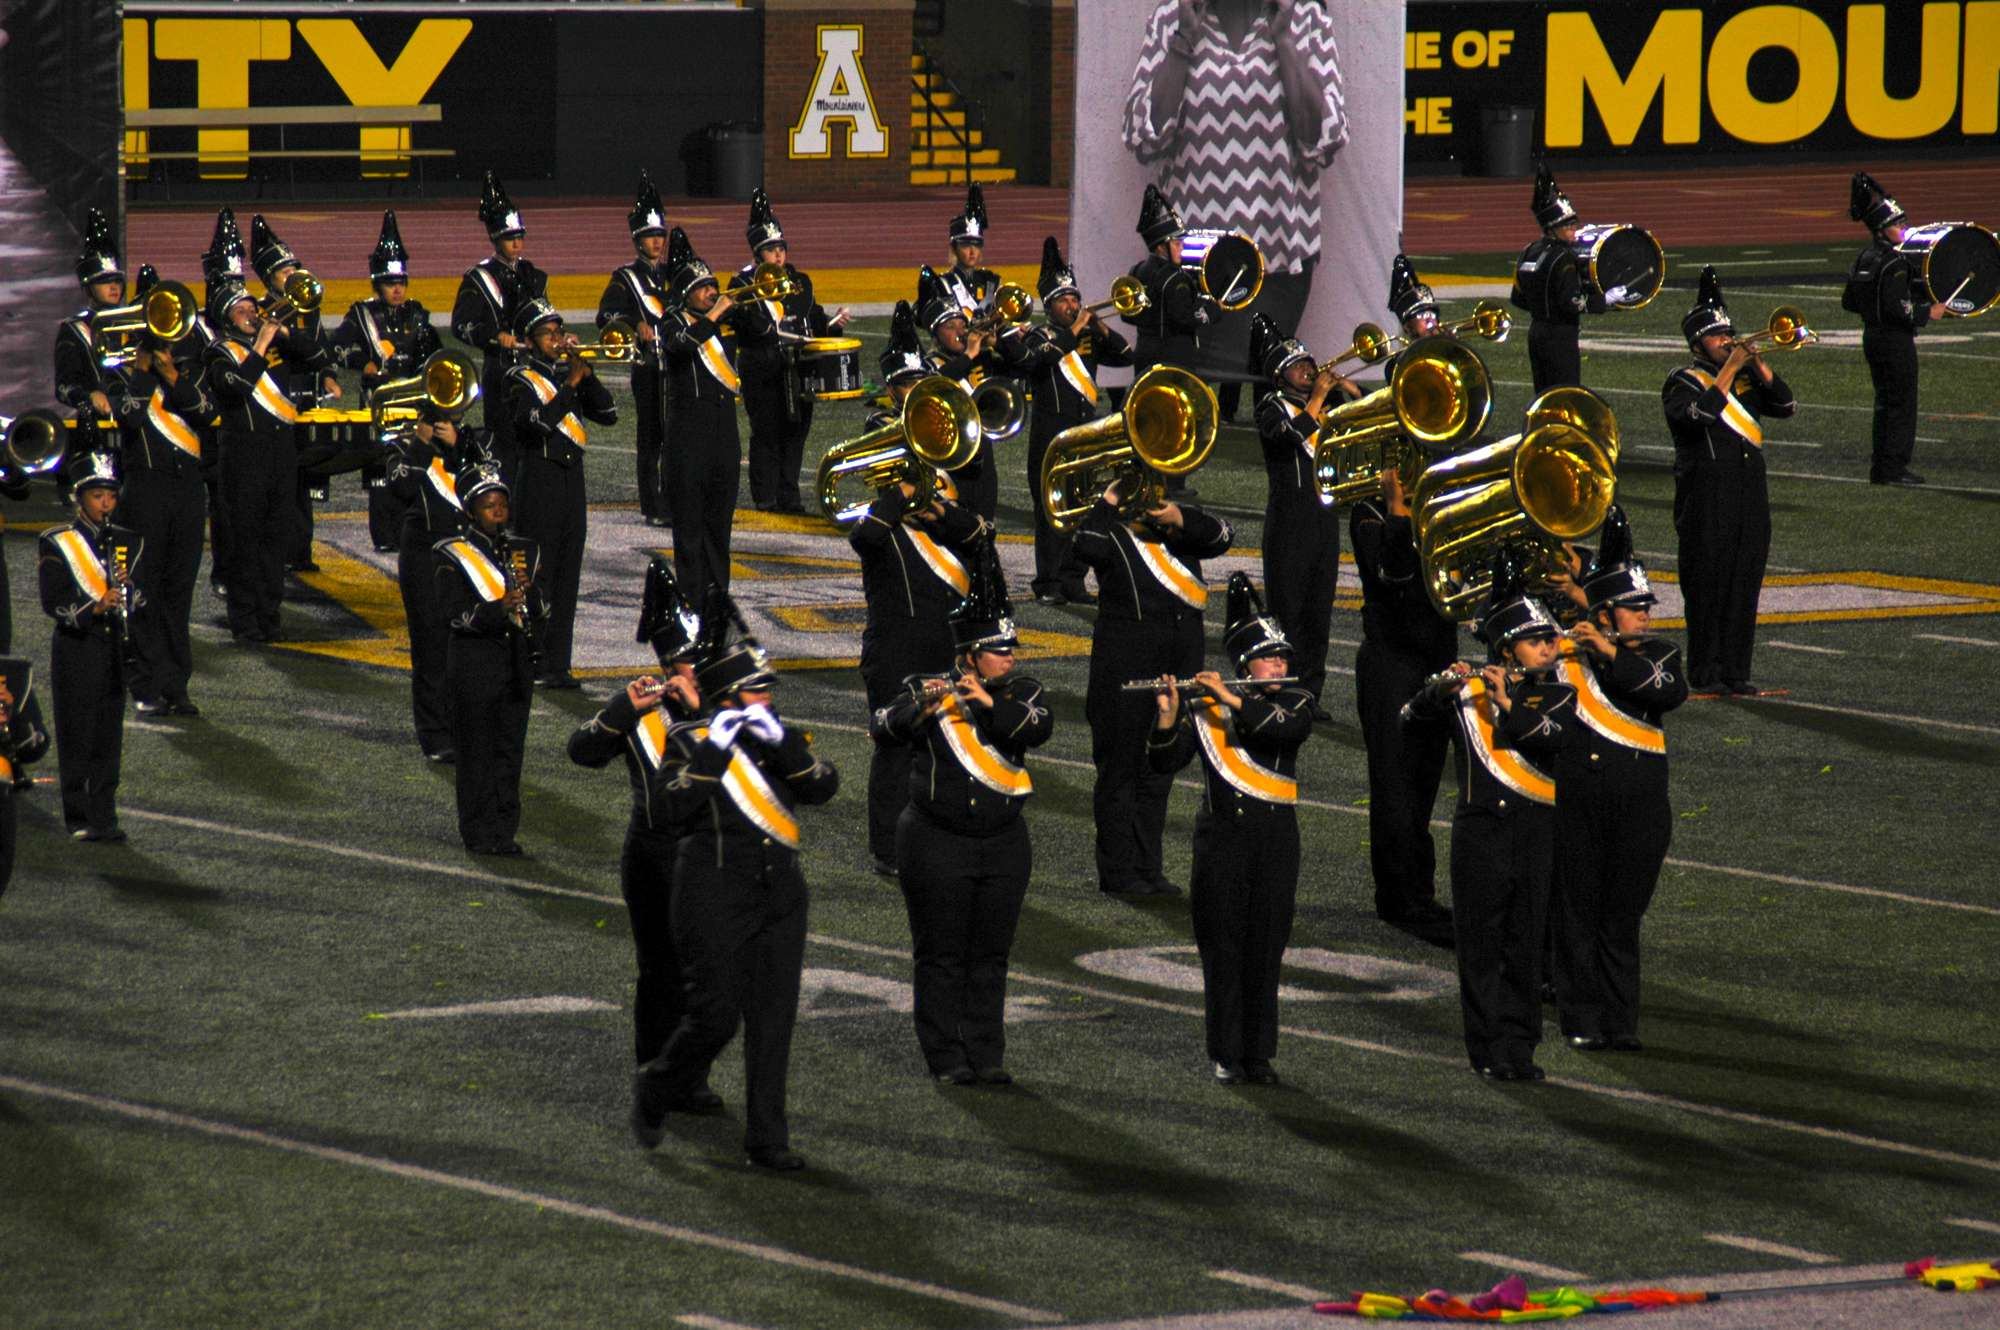 Marching band festival attracts crowd of 8,000